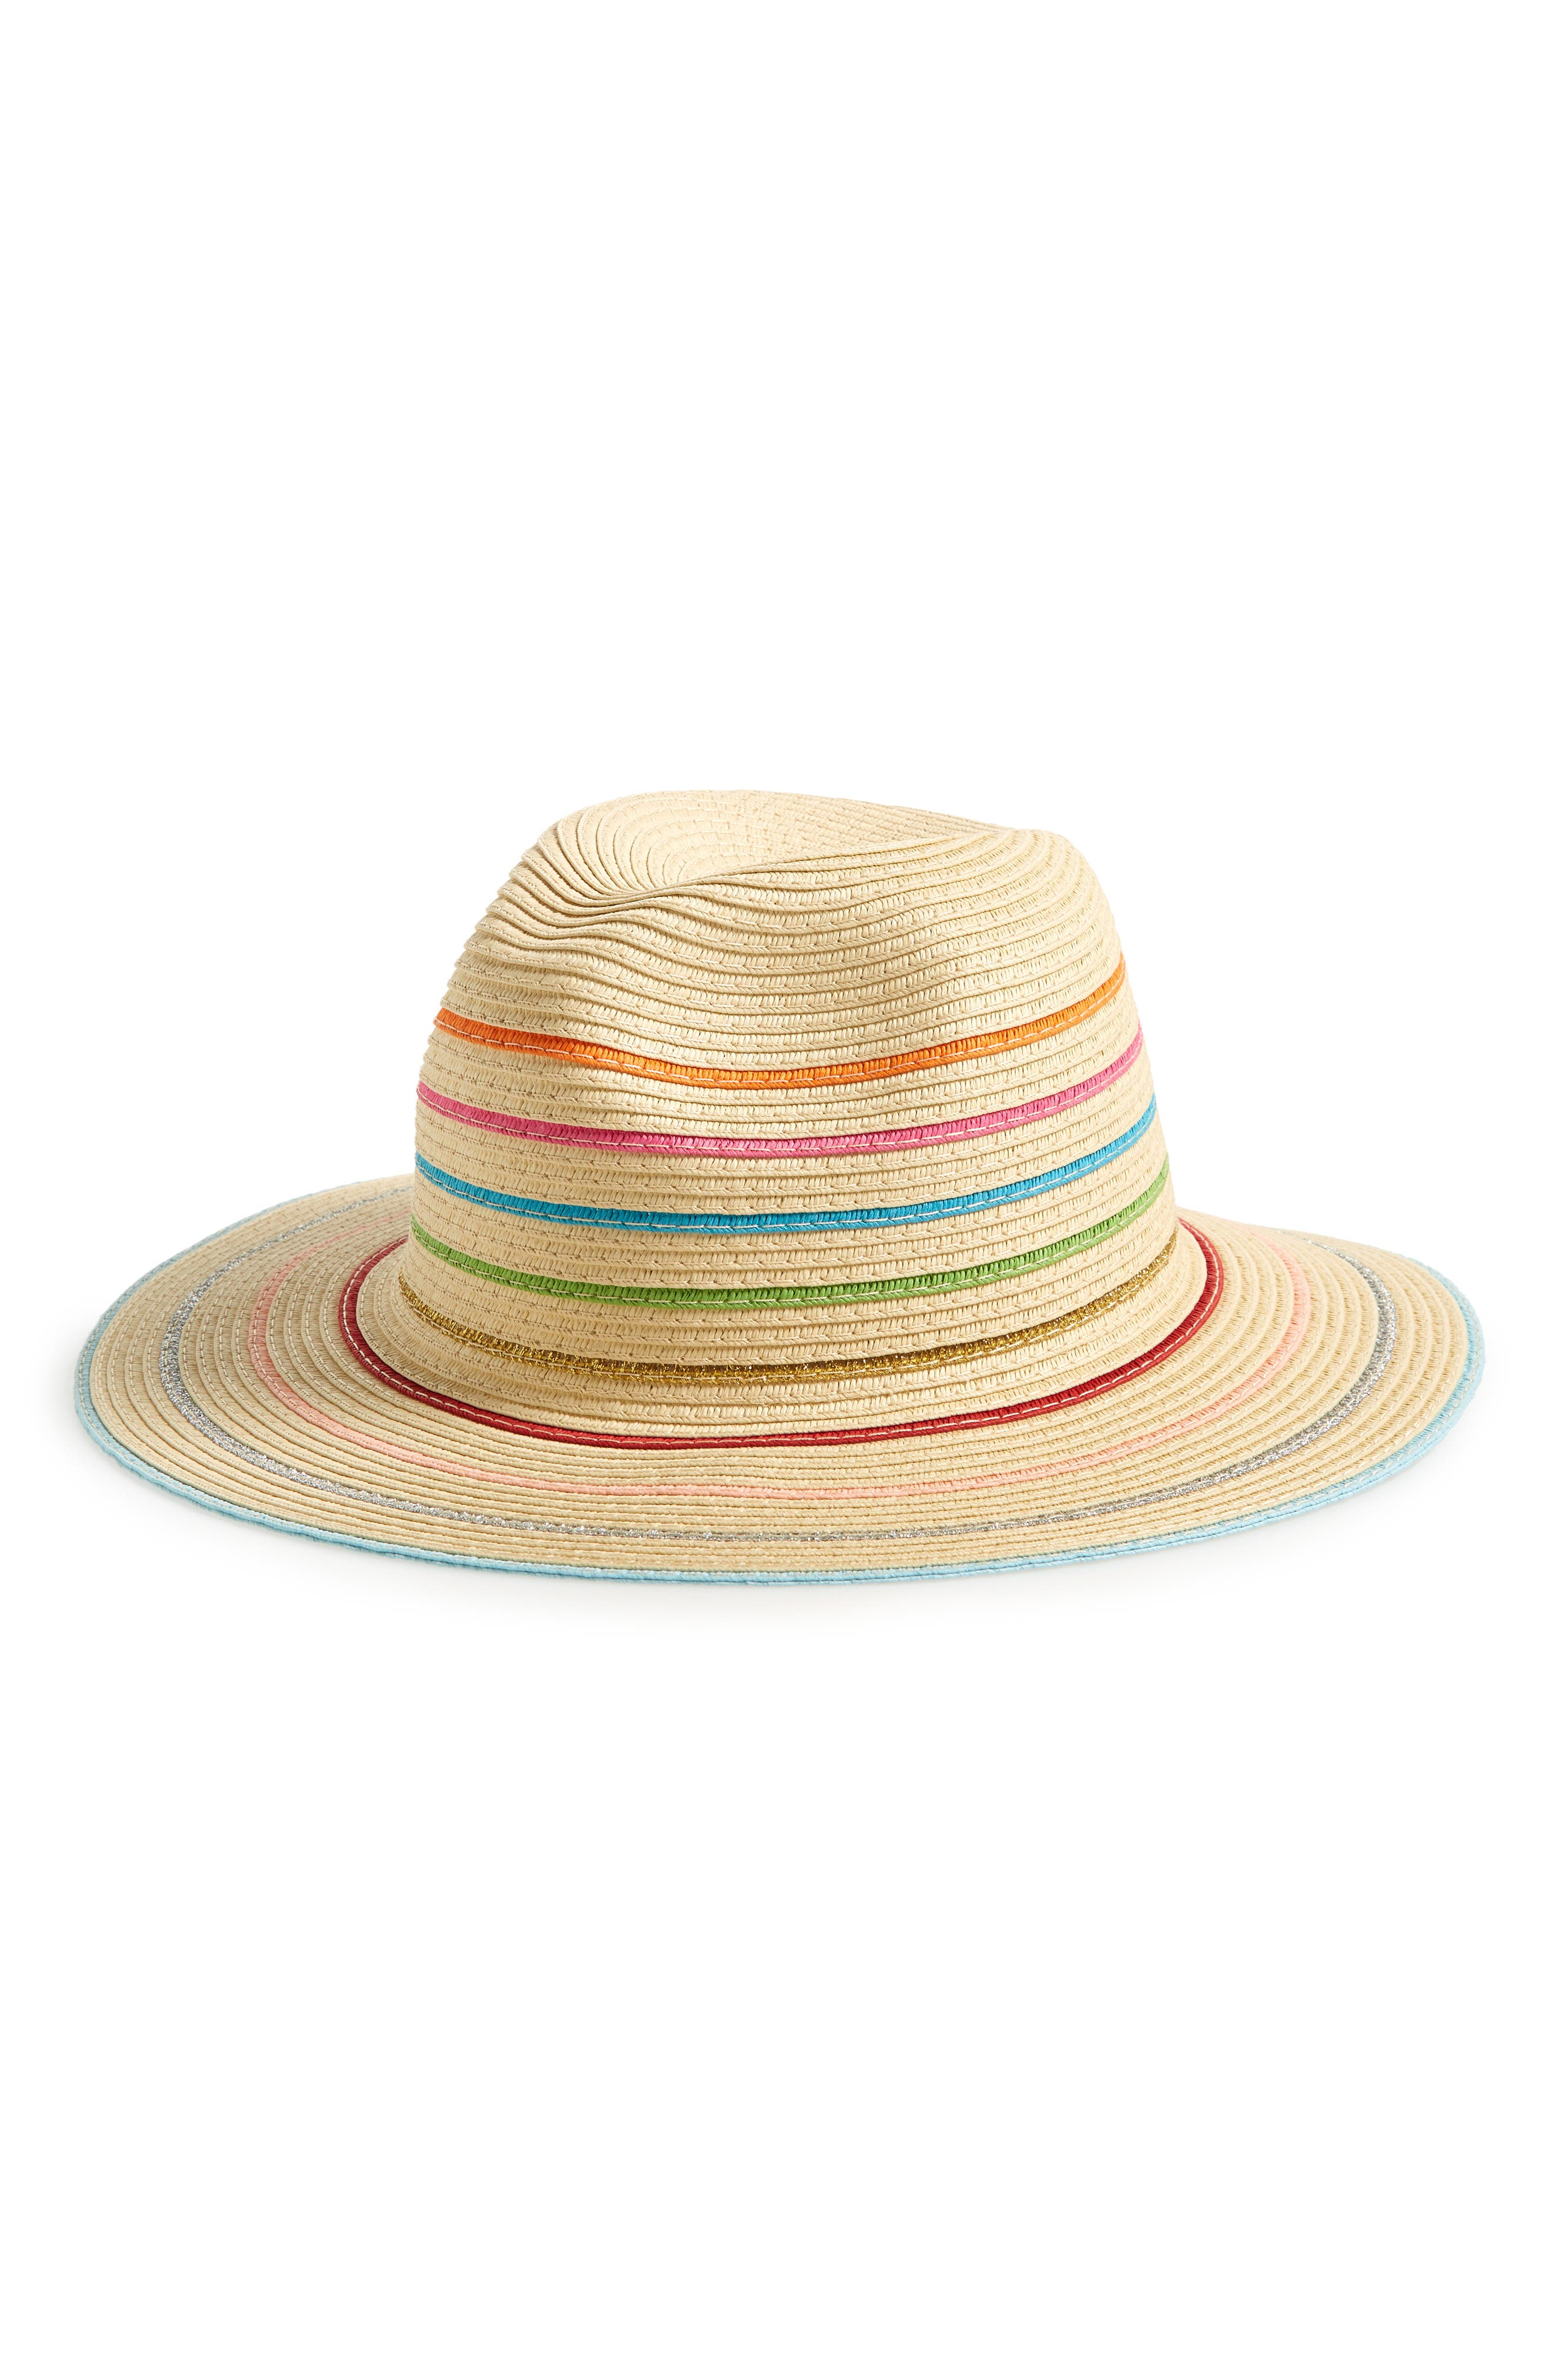 ECHO Stripe Packable Straw Fedora, Main, color, 200